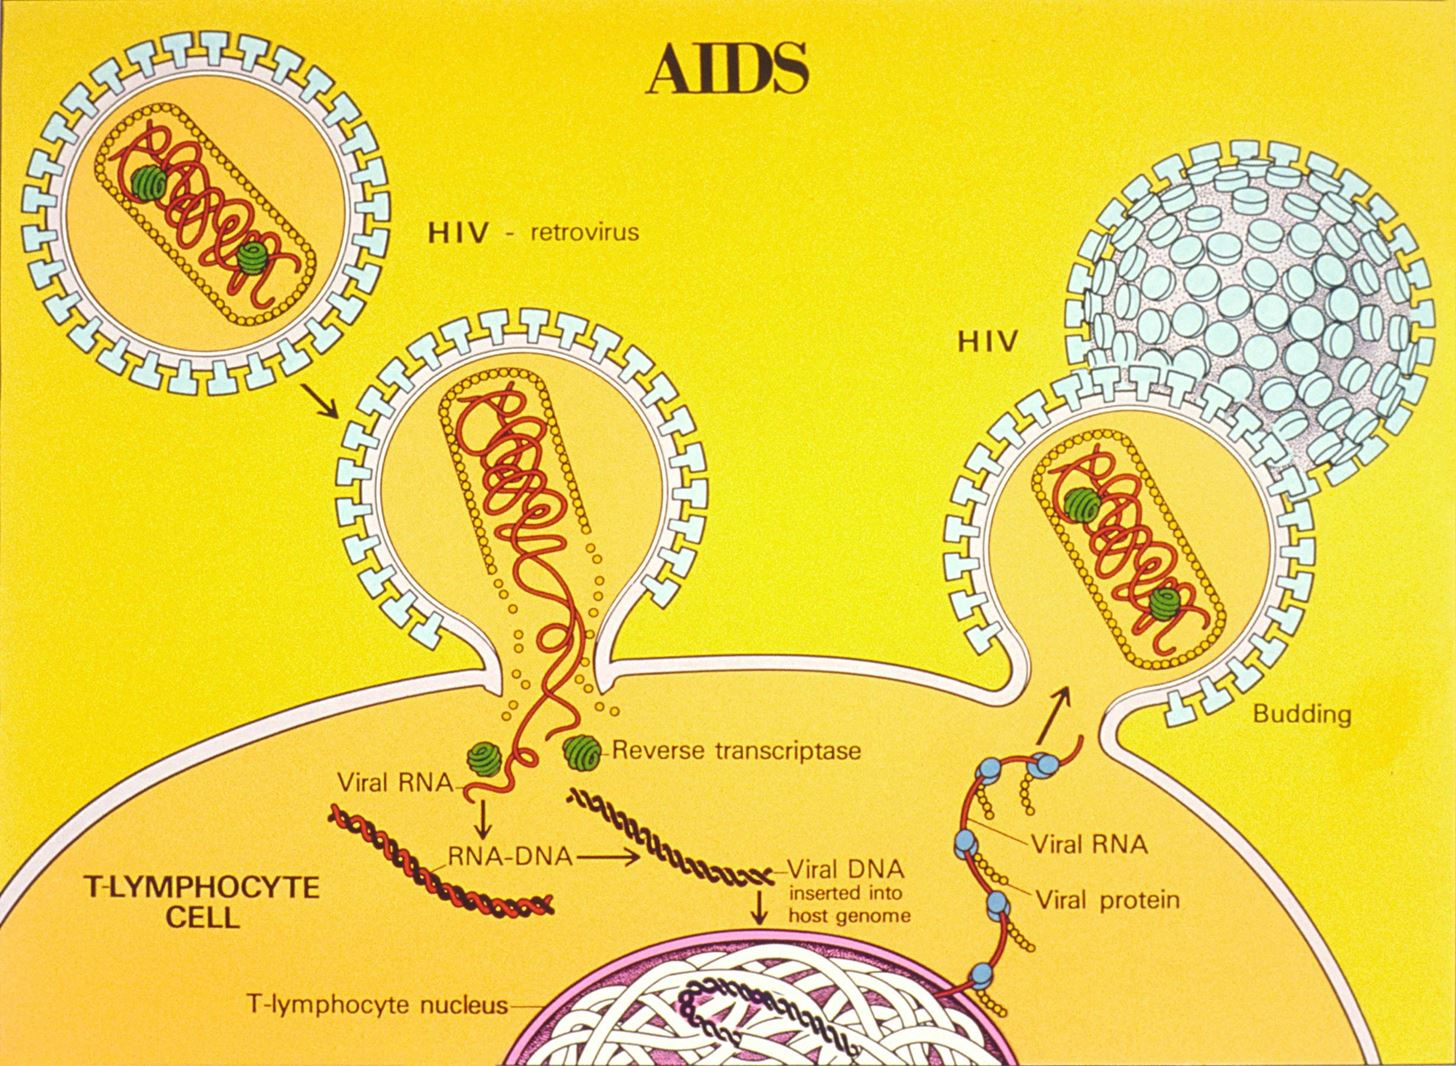 Latent HIV Can Hide, but Can't Escape Detection with New Test